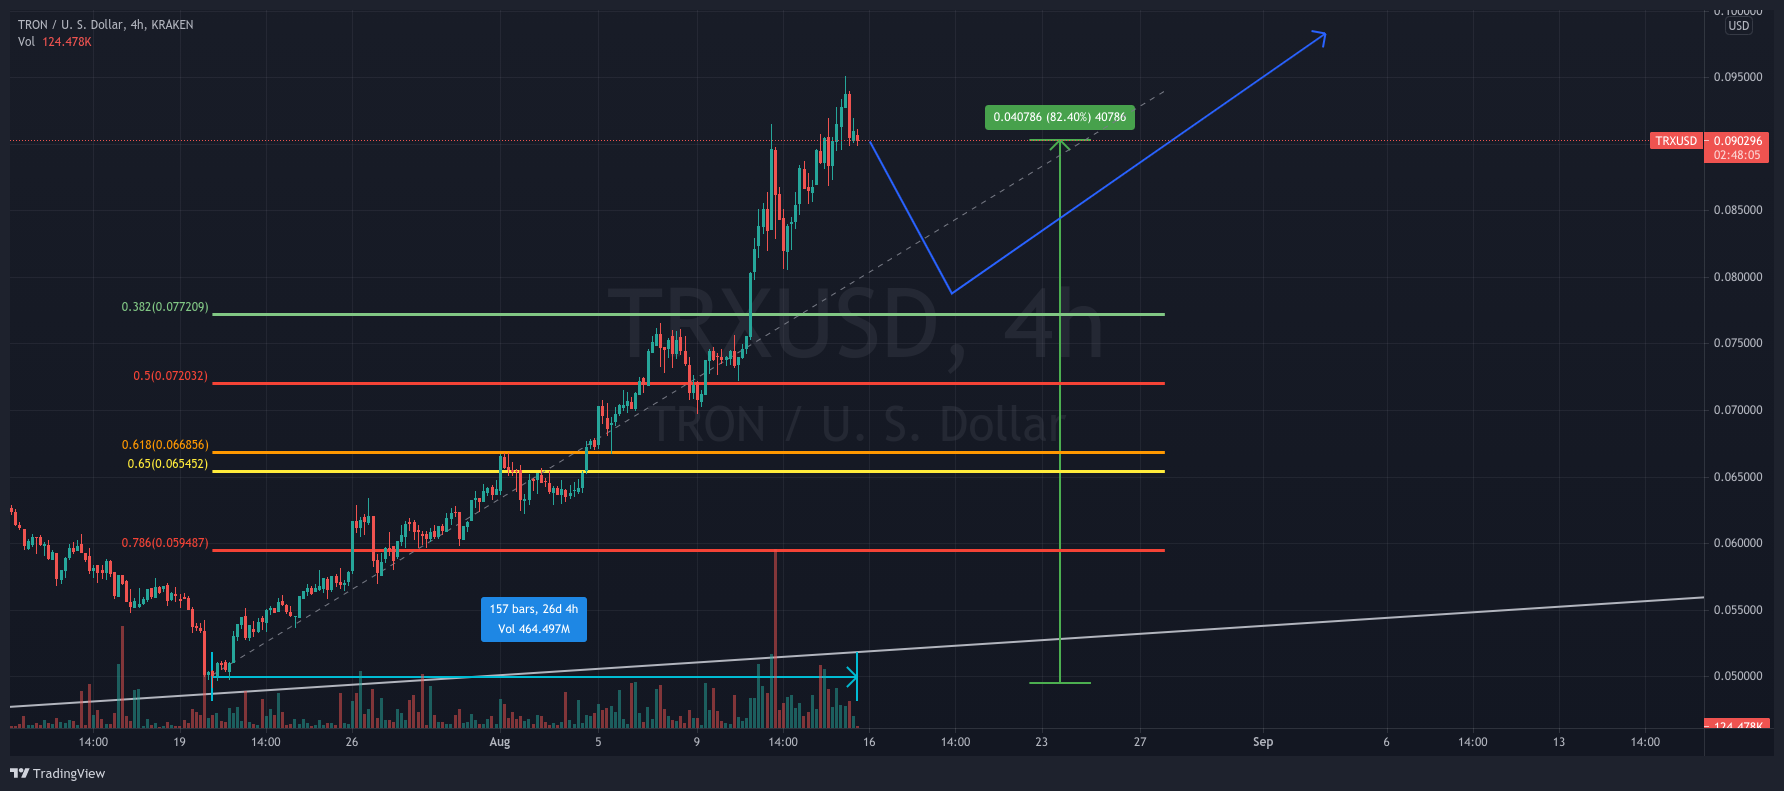 TRX/USD 4-hours chart showing a potential retracement for TRX